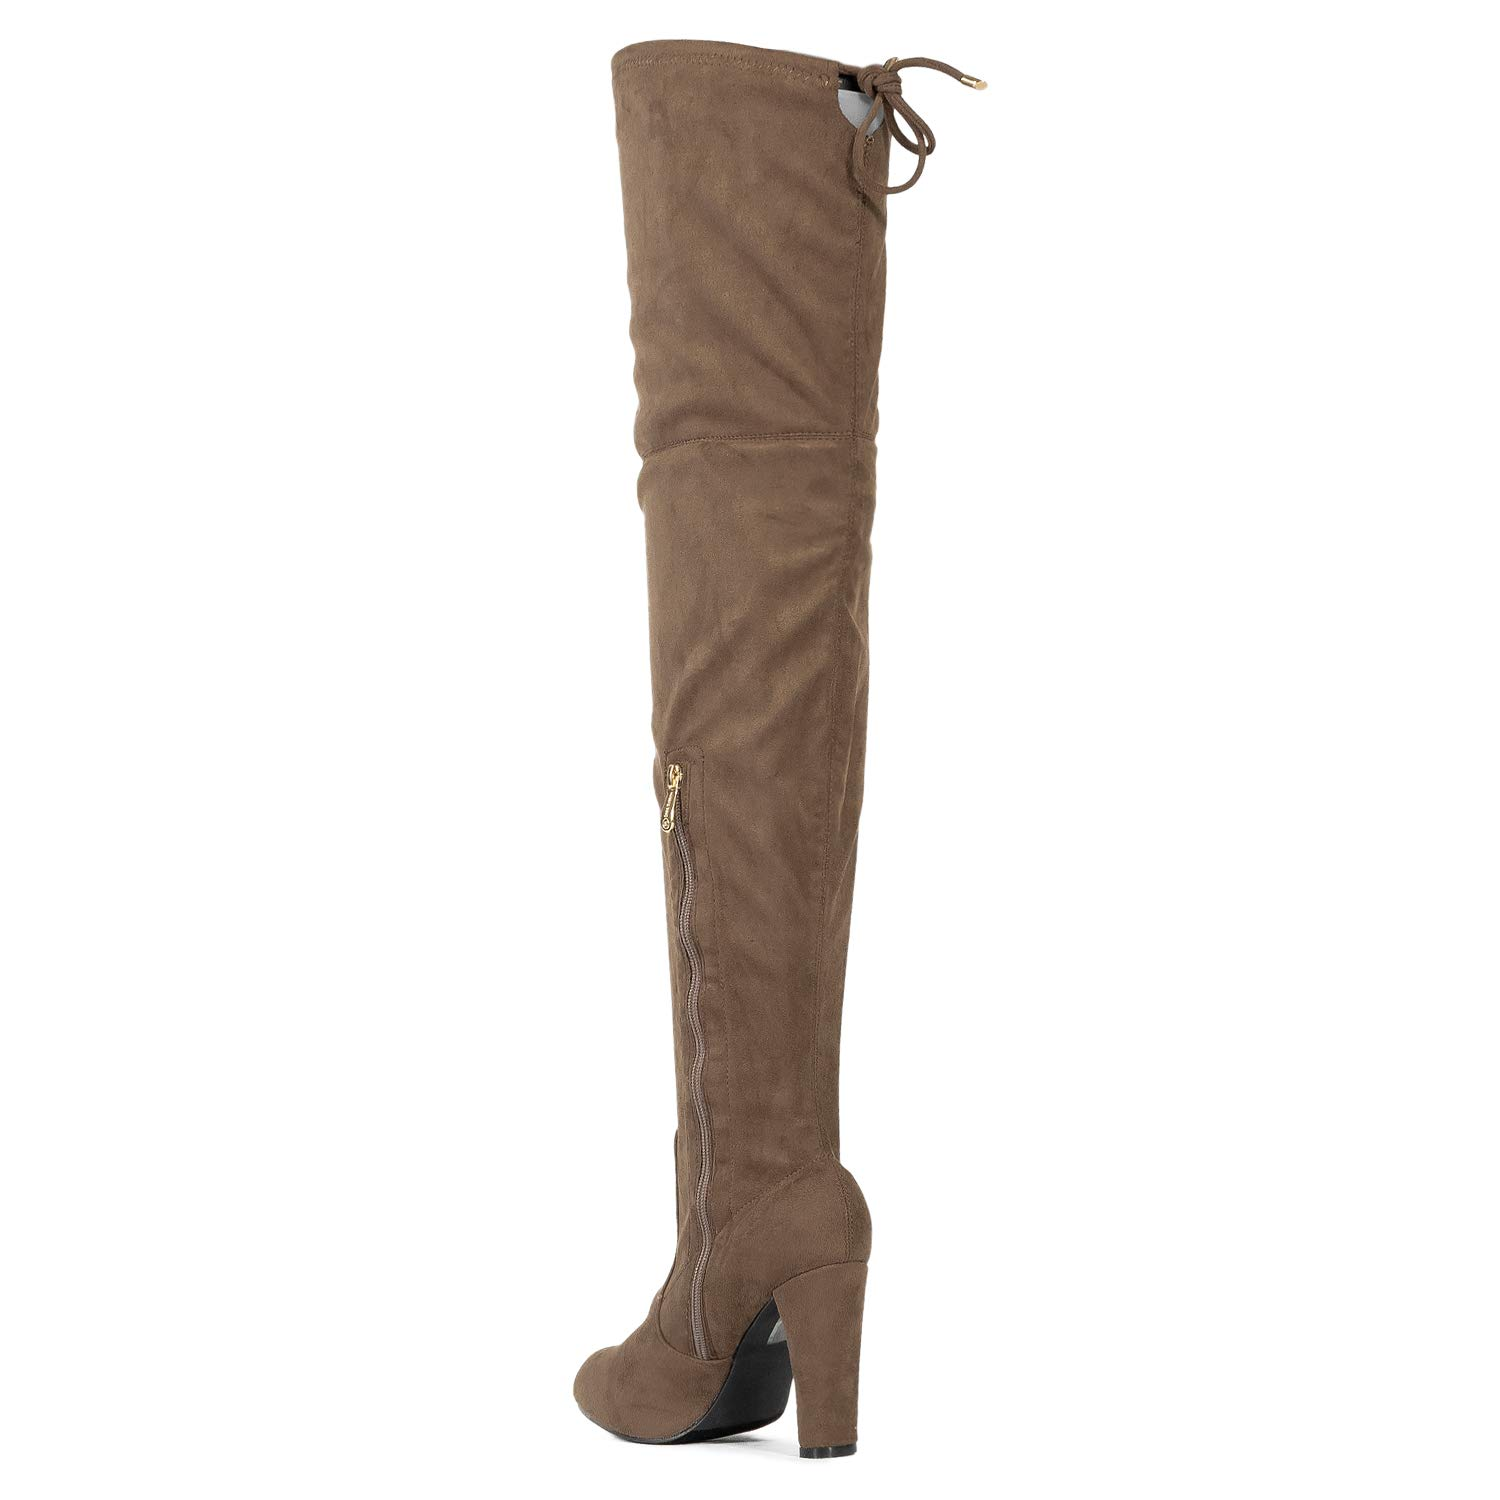 RF ROOM OF FASHION Women Fashion Comfy Vegan Suede Block Heel Side Zipper Thigh High Over The Knee Boots